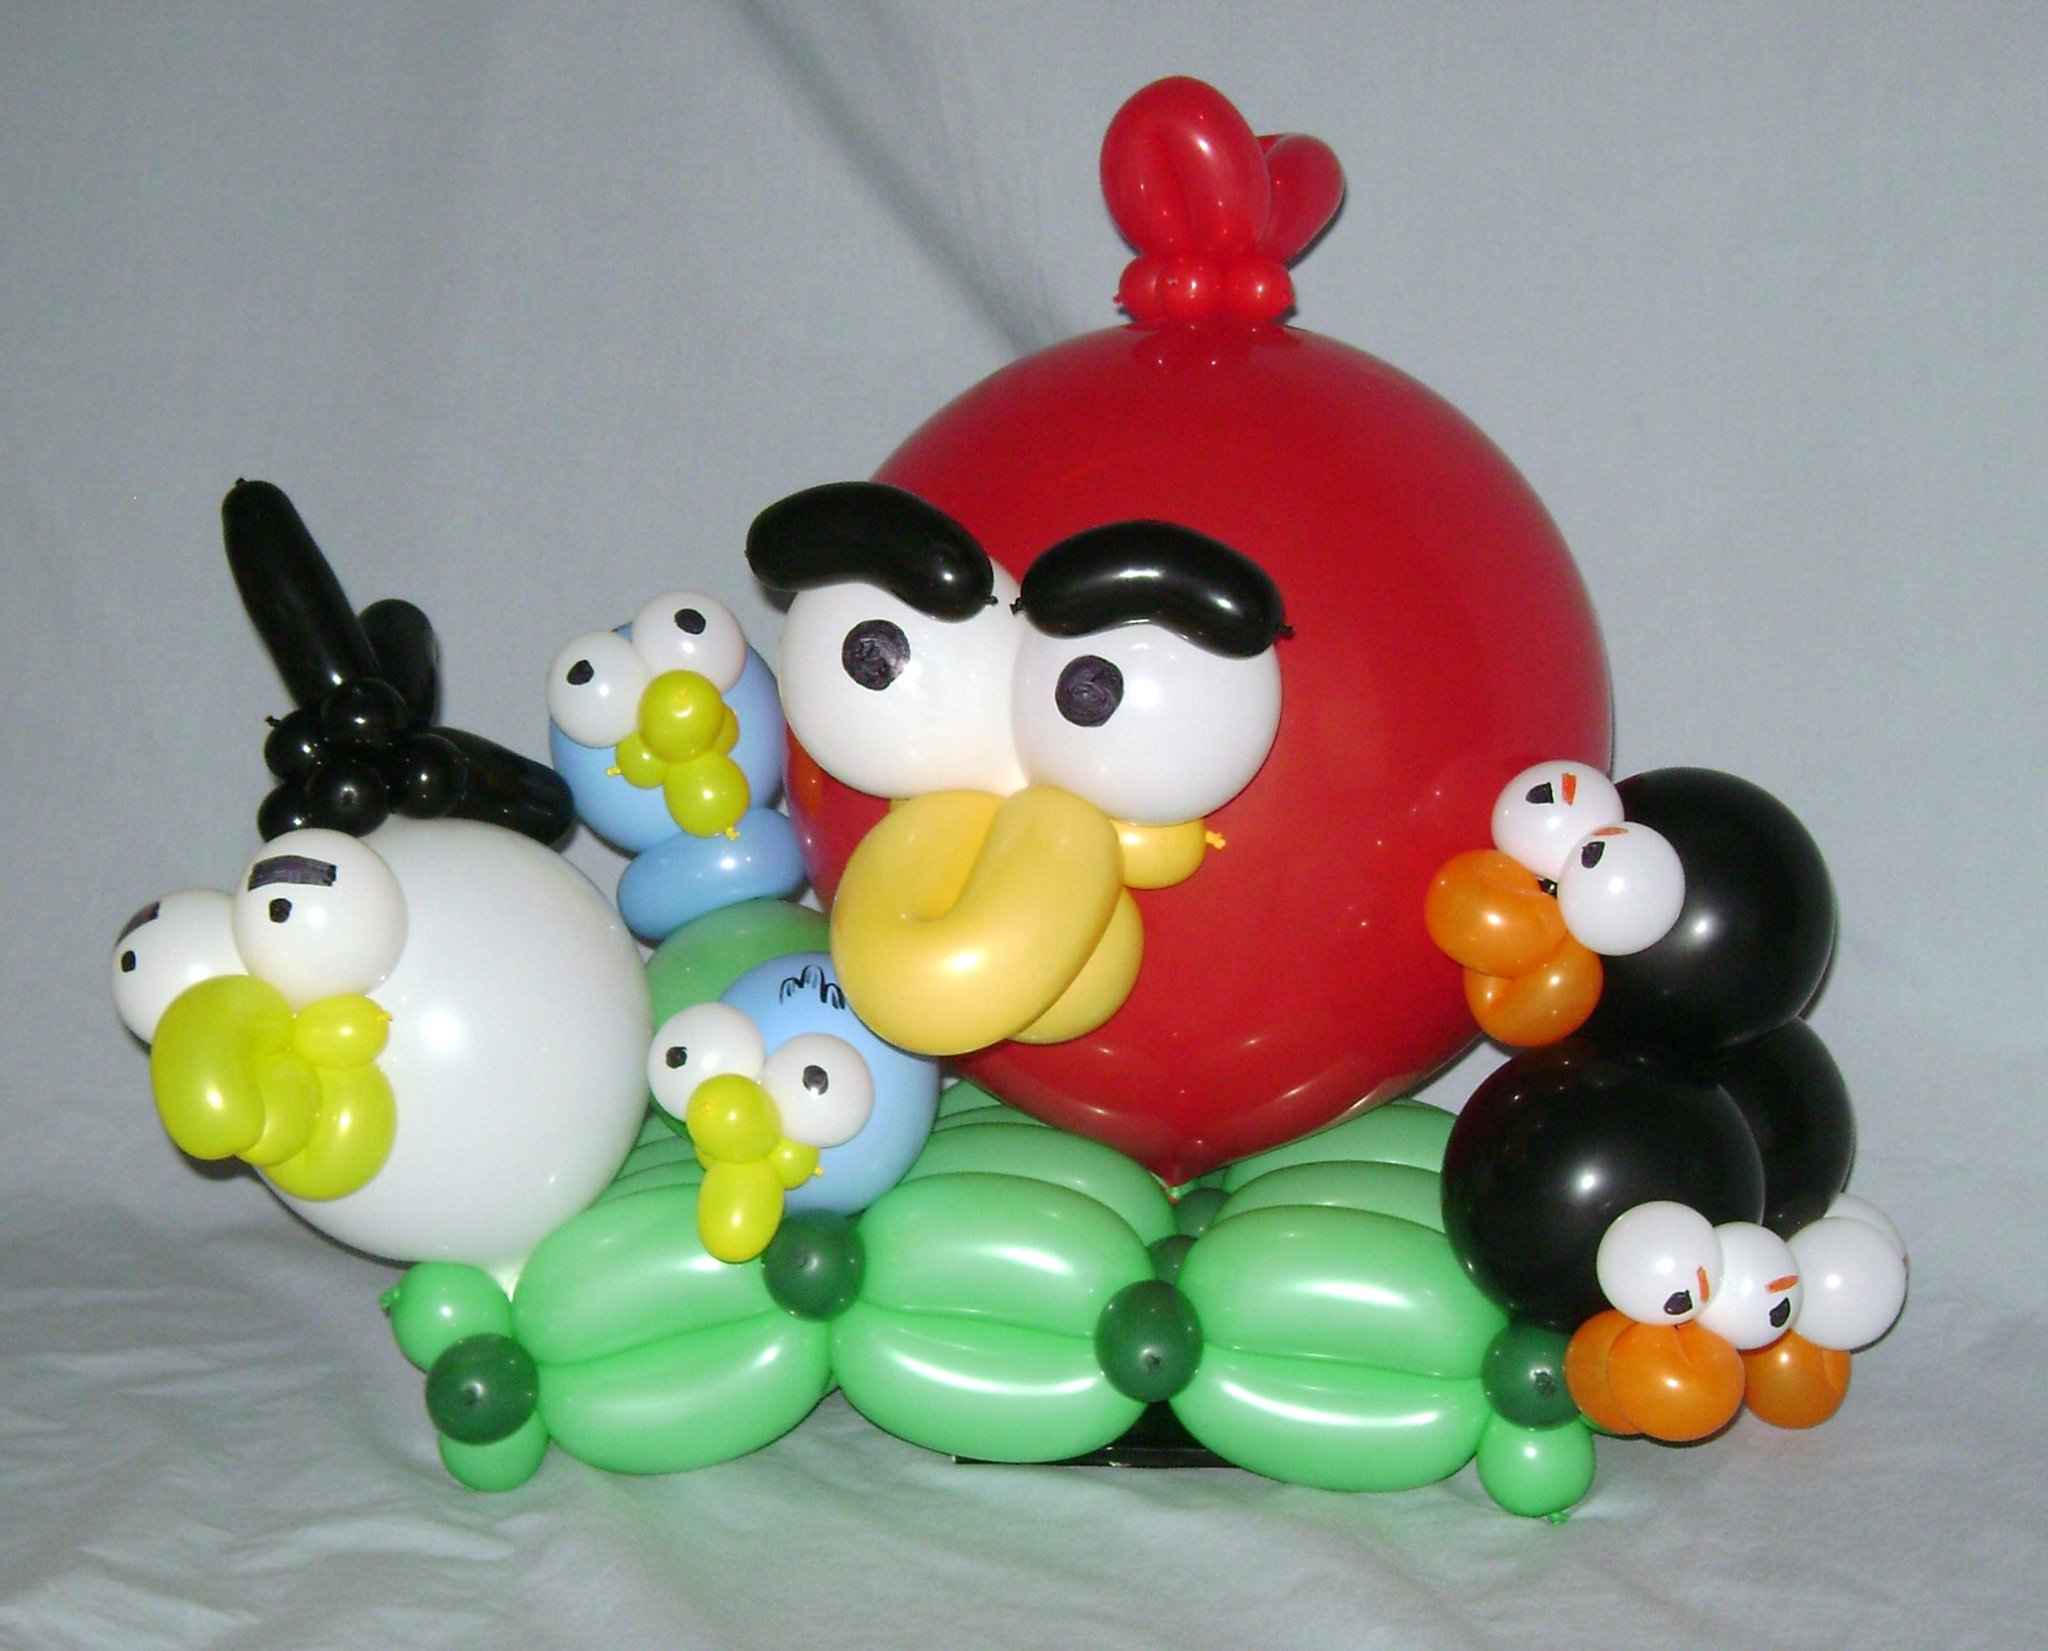 SAMMY J Balloon Creations st louis balloons angry birds